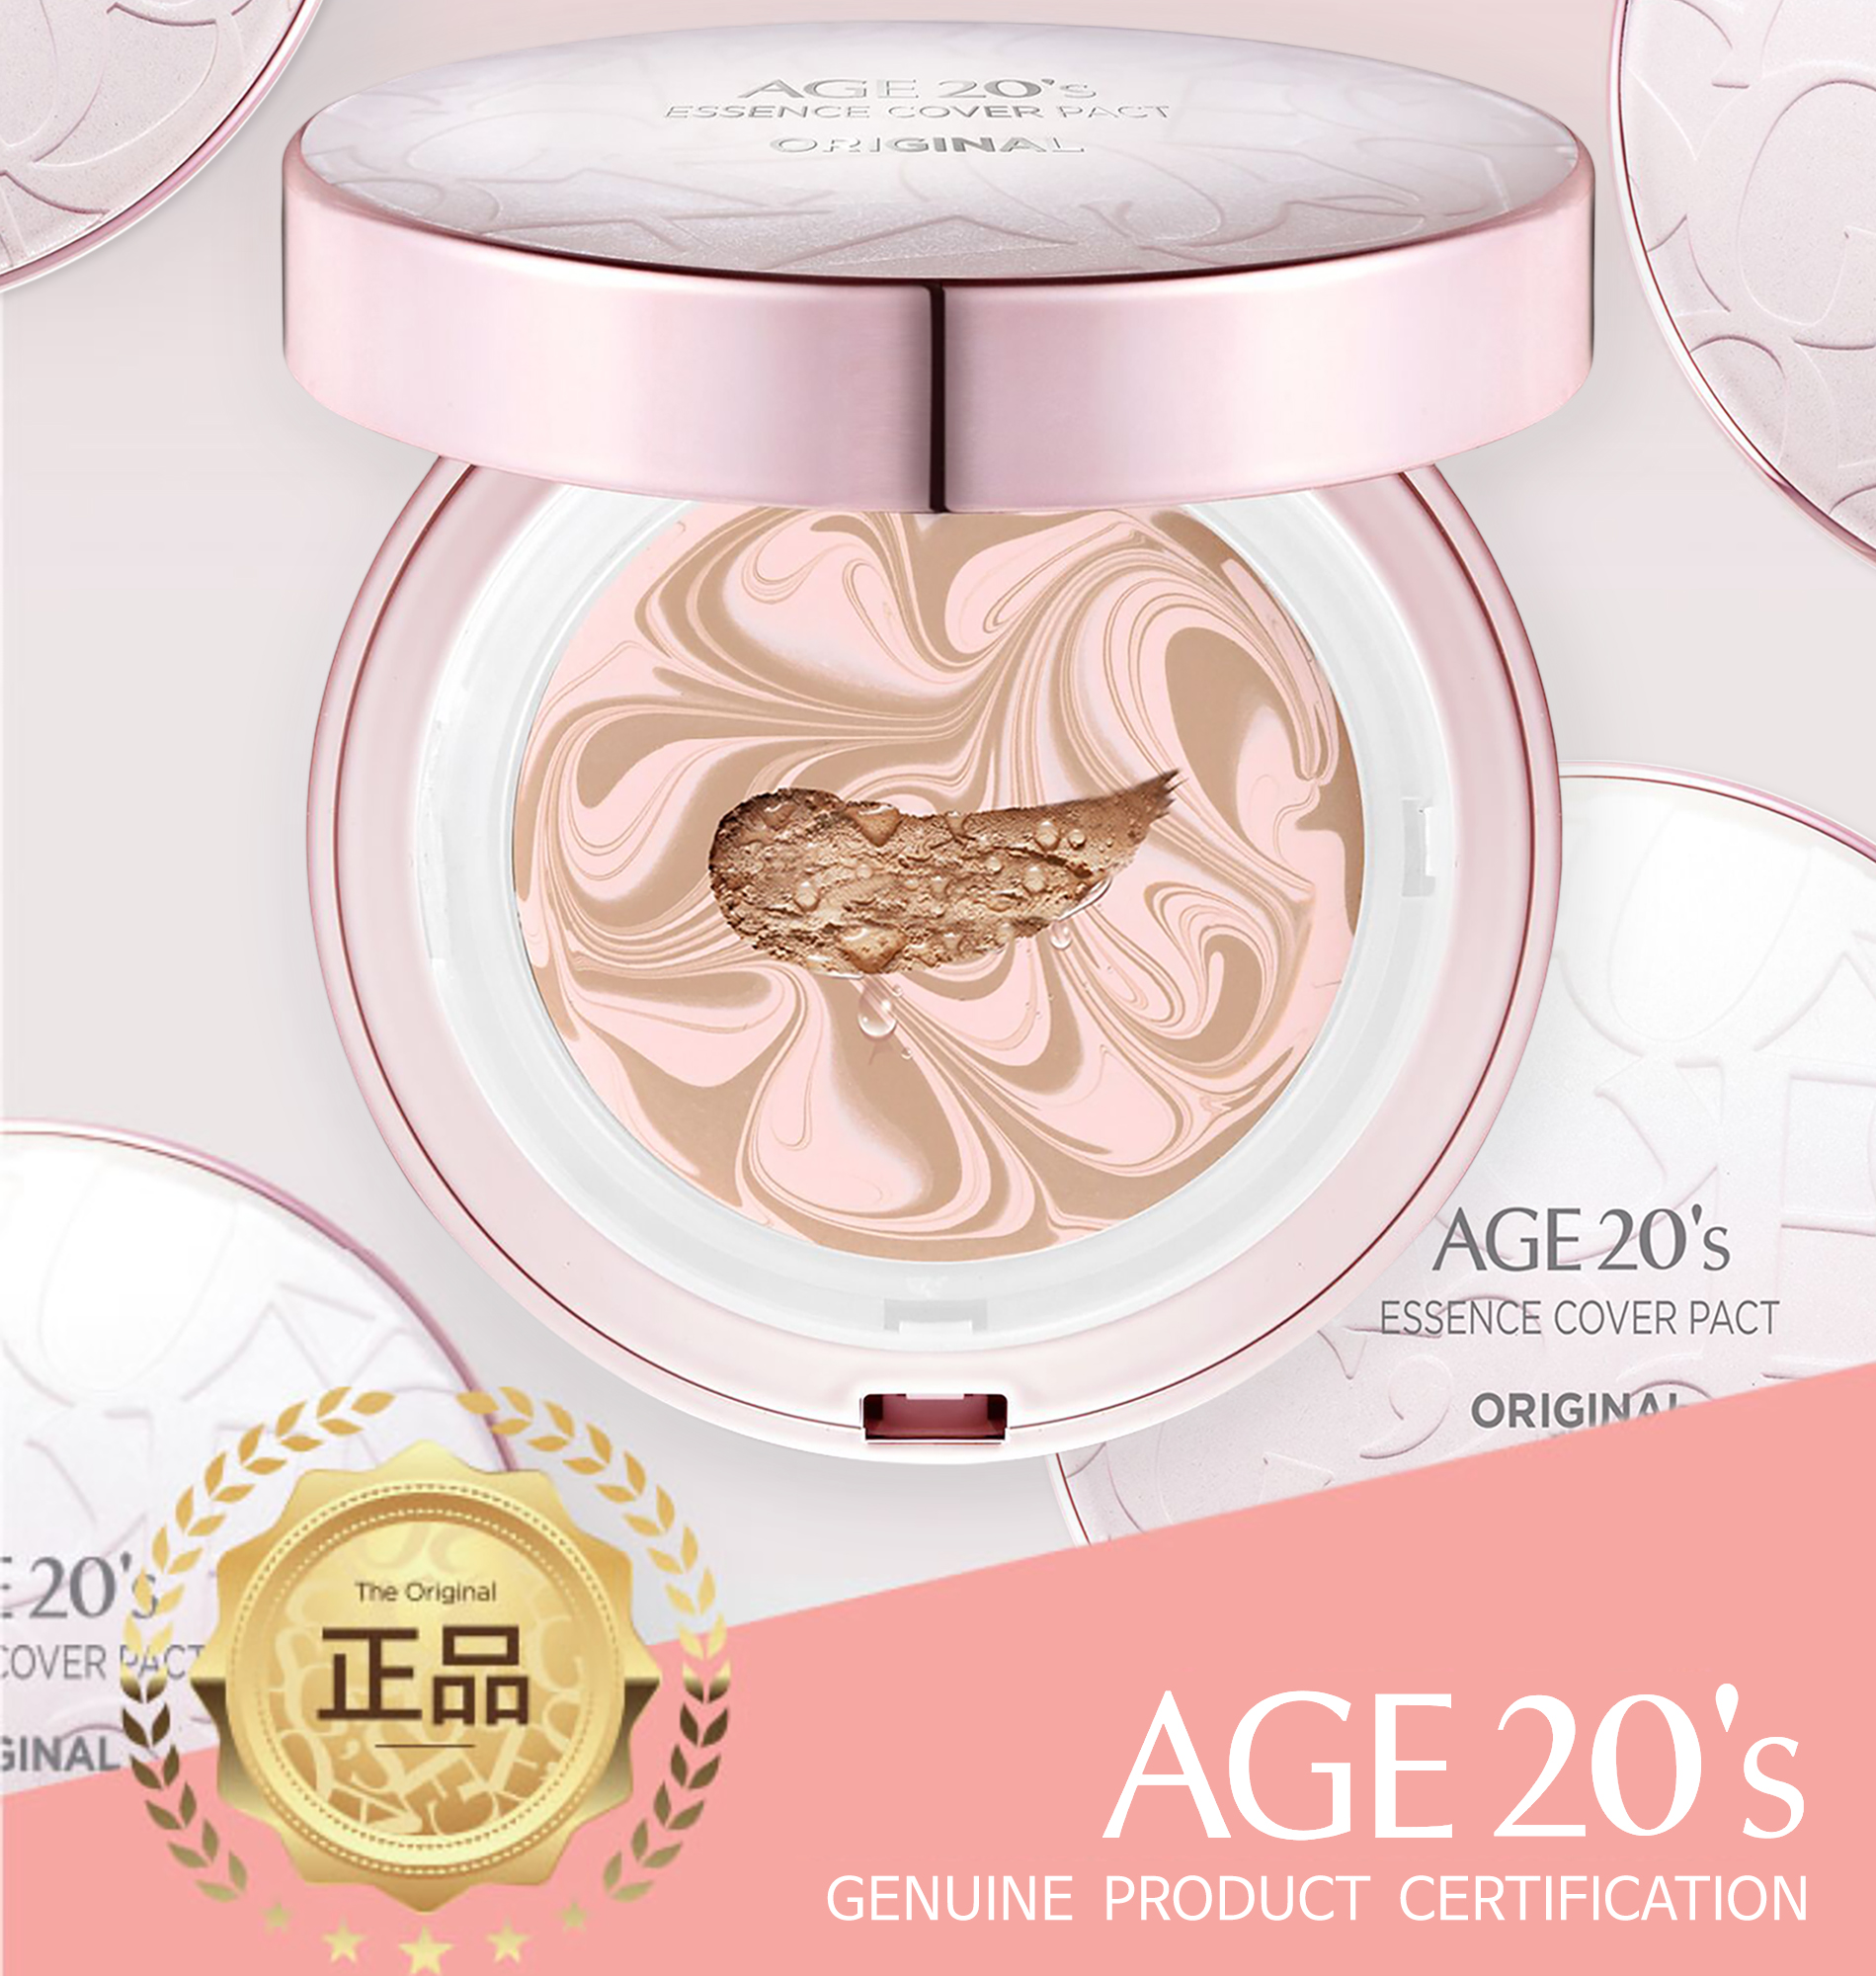 Age 20's Compact Foundation Premium Makeup, + 1 Extra Refill - Essence Cover Pact SPF50+ (Made in Korea) - Pink / Natural Beige (Color 23)